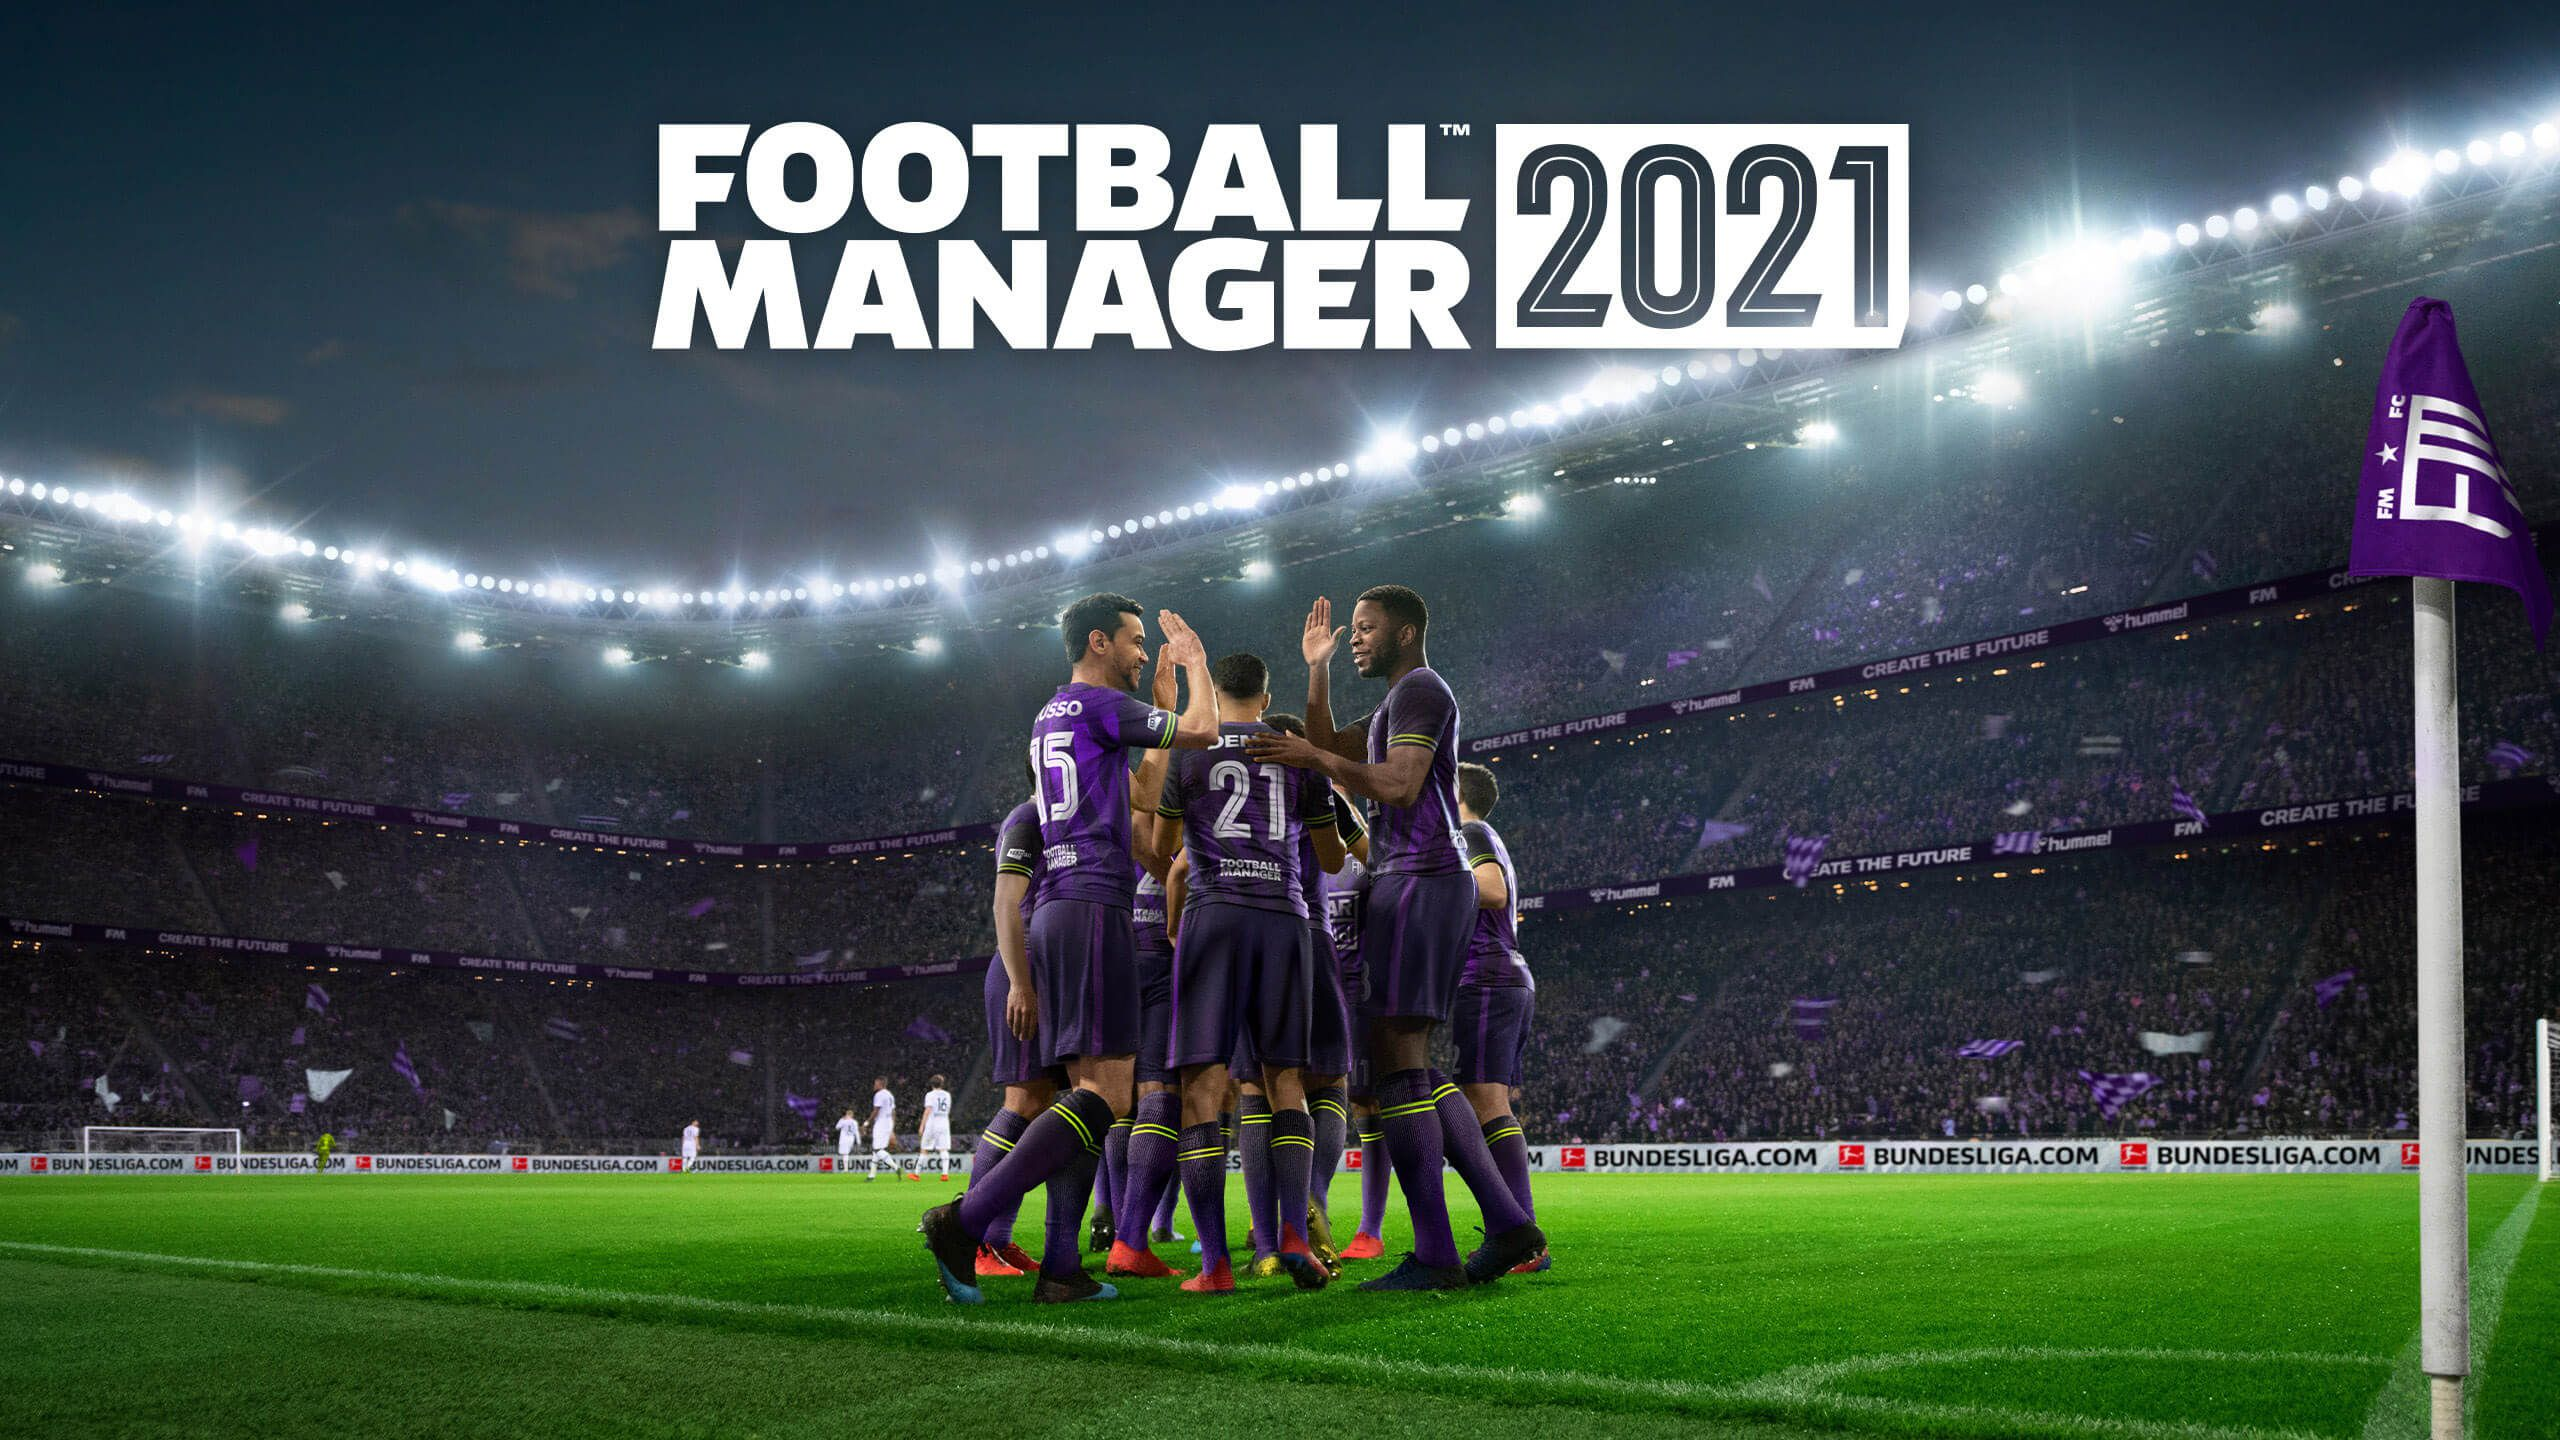 Football Manager 2021 FM21